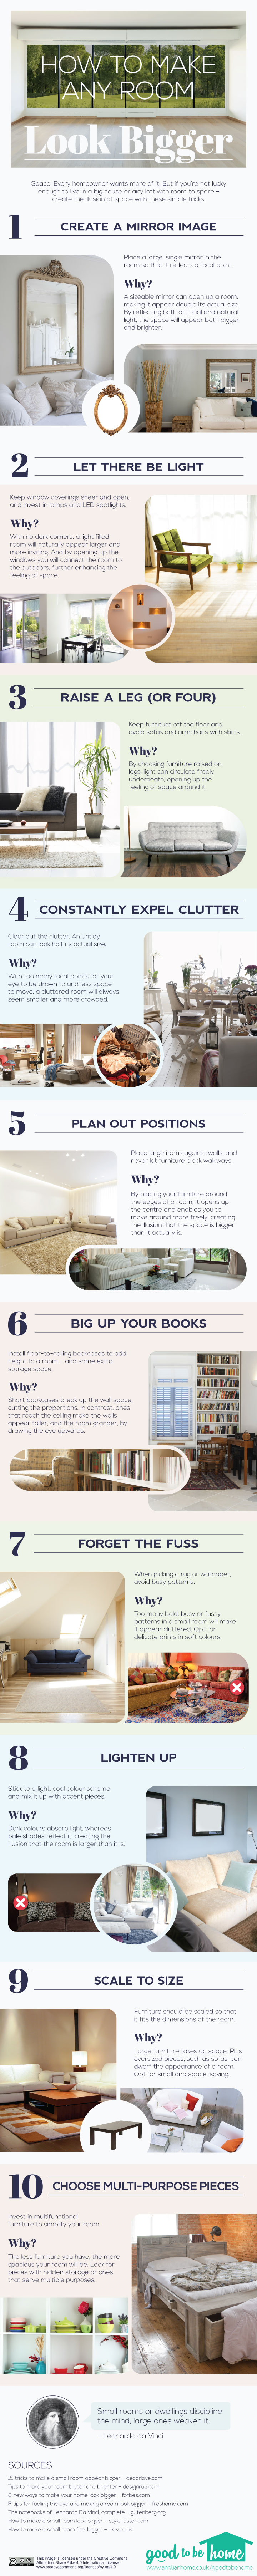 How to make a Room Look Bigger Infographic